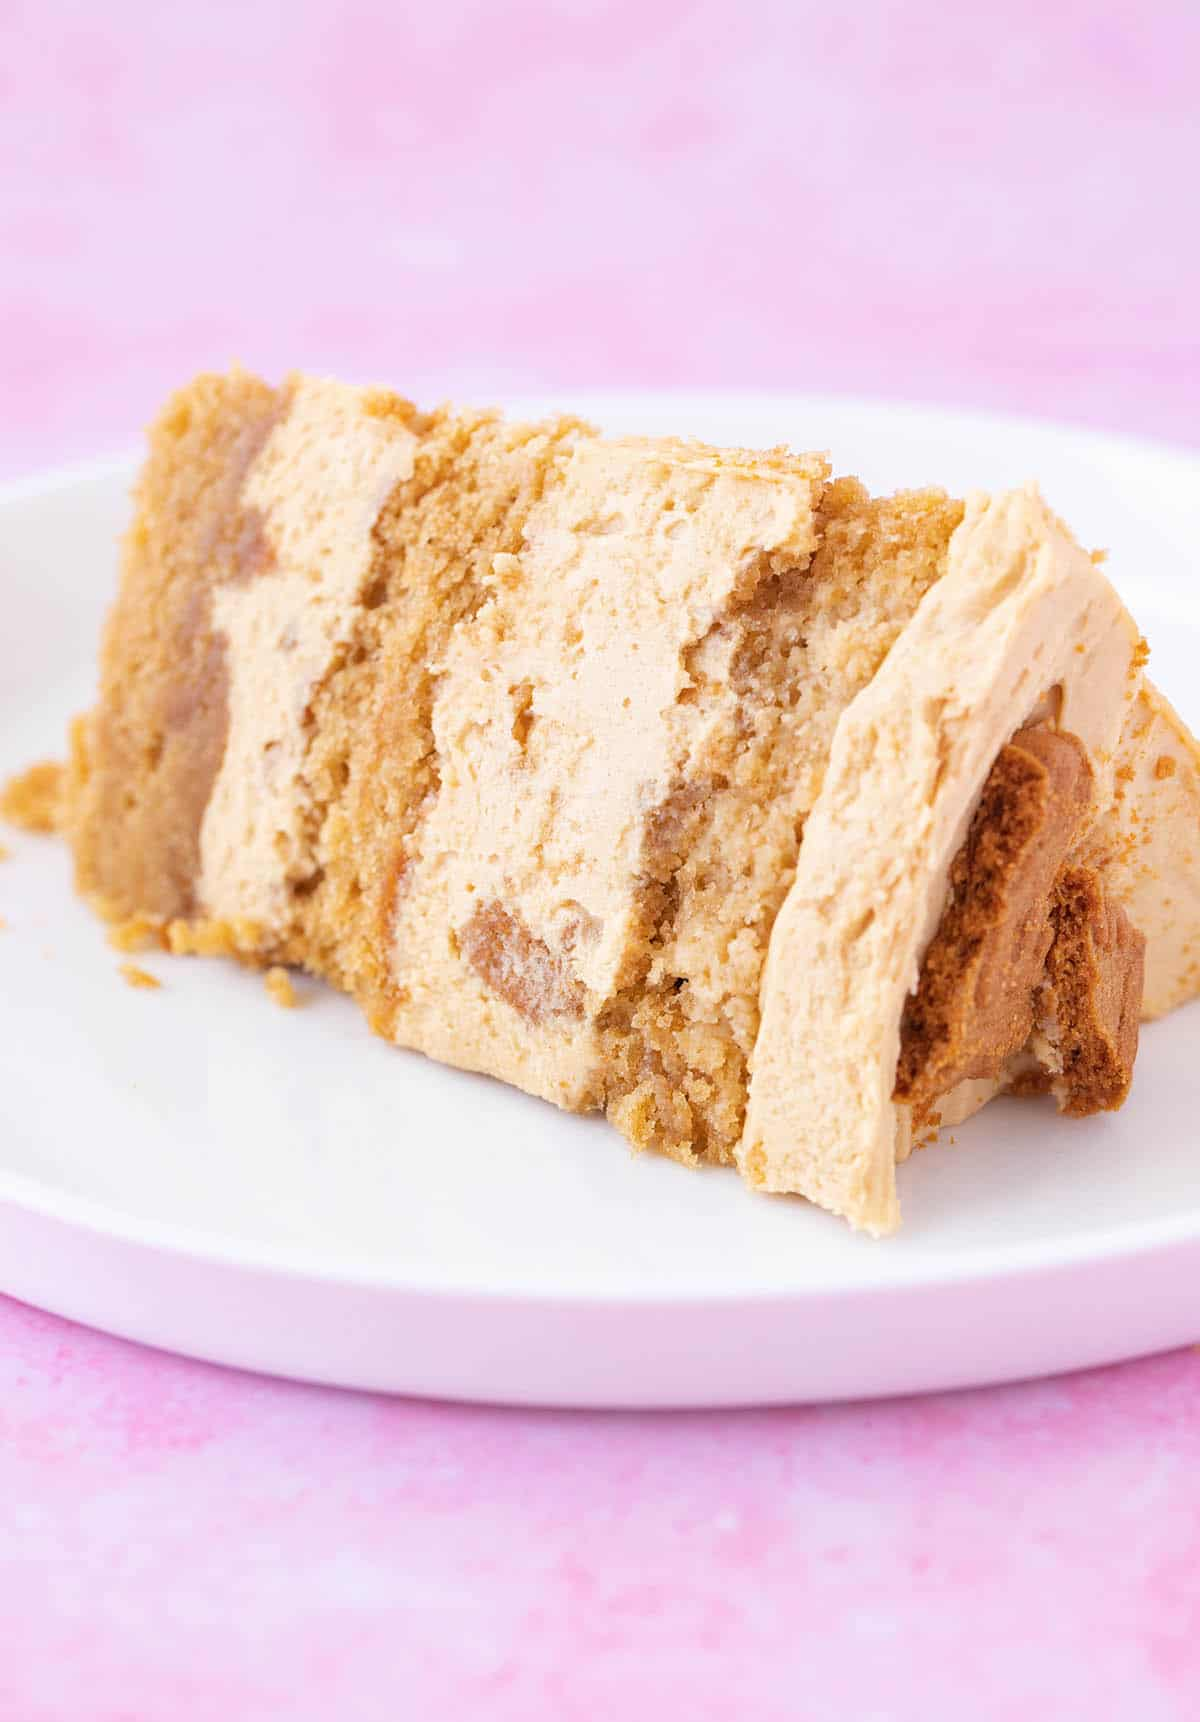 A slice of cake showing the layers of Biscoff frosting.